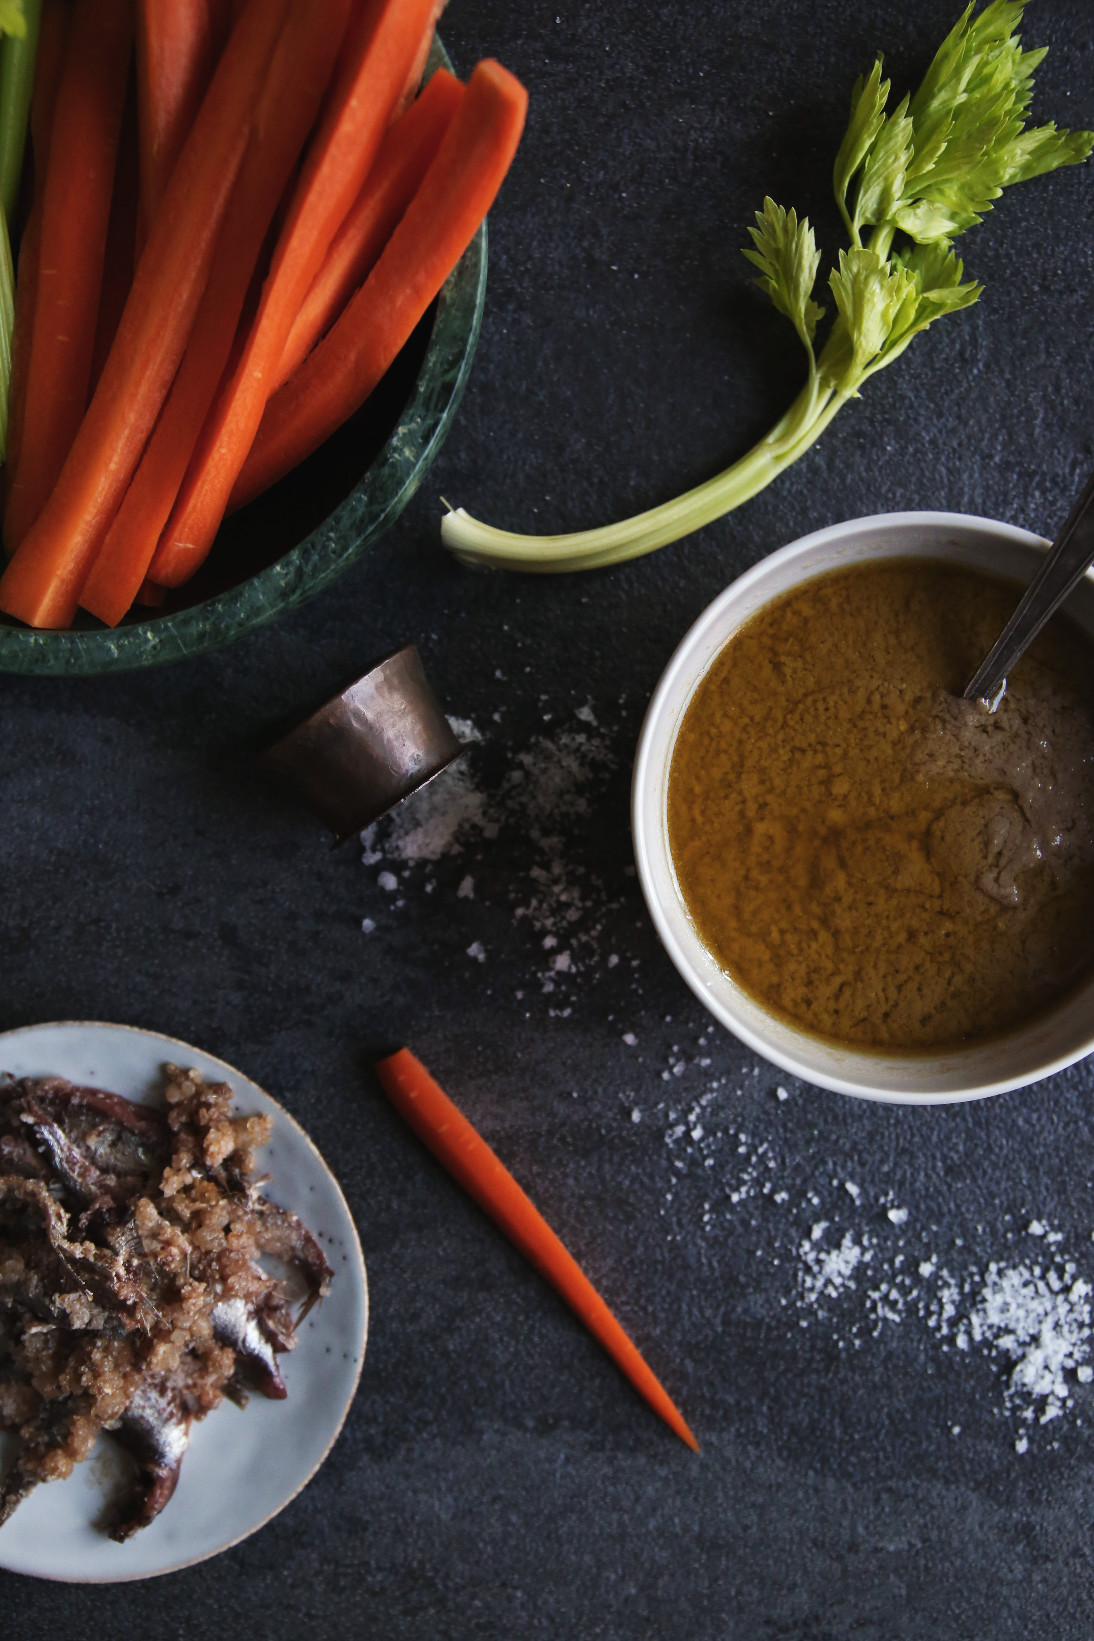 Bagna cauda, the Piedmontese anchovy dip   on Due fili d'erba   Two blades of grass   Recipe, styling and photography by Thais FK   Bagna Cauda Day 2016